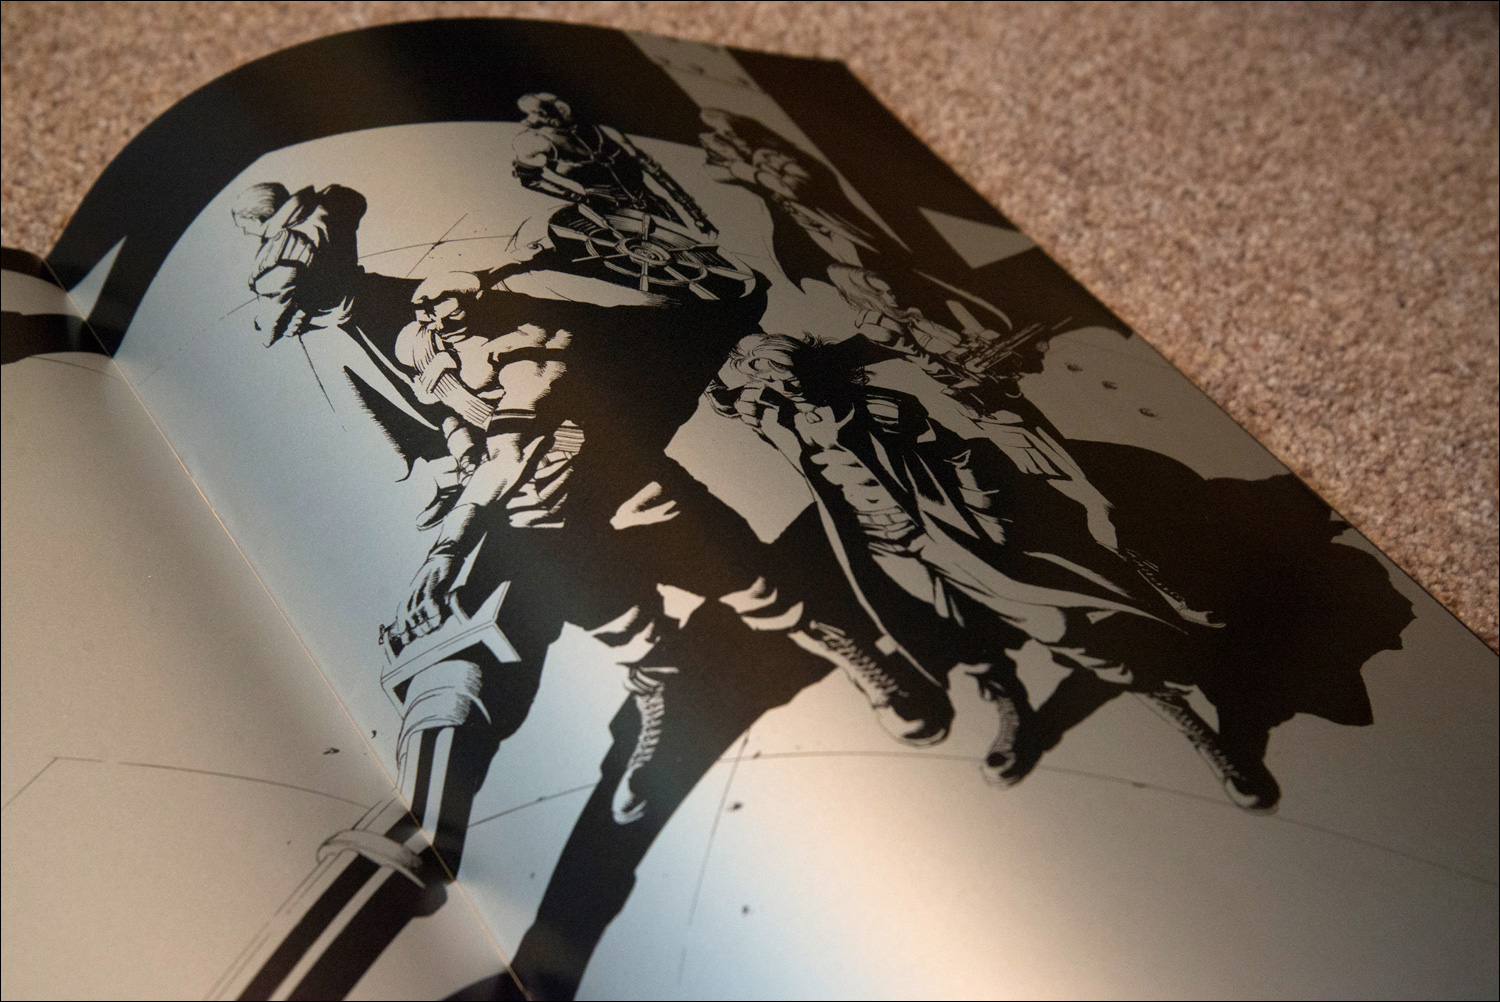 Metal-Gear-Solid-Premium-Package-Classified-Book-FOXHOUND